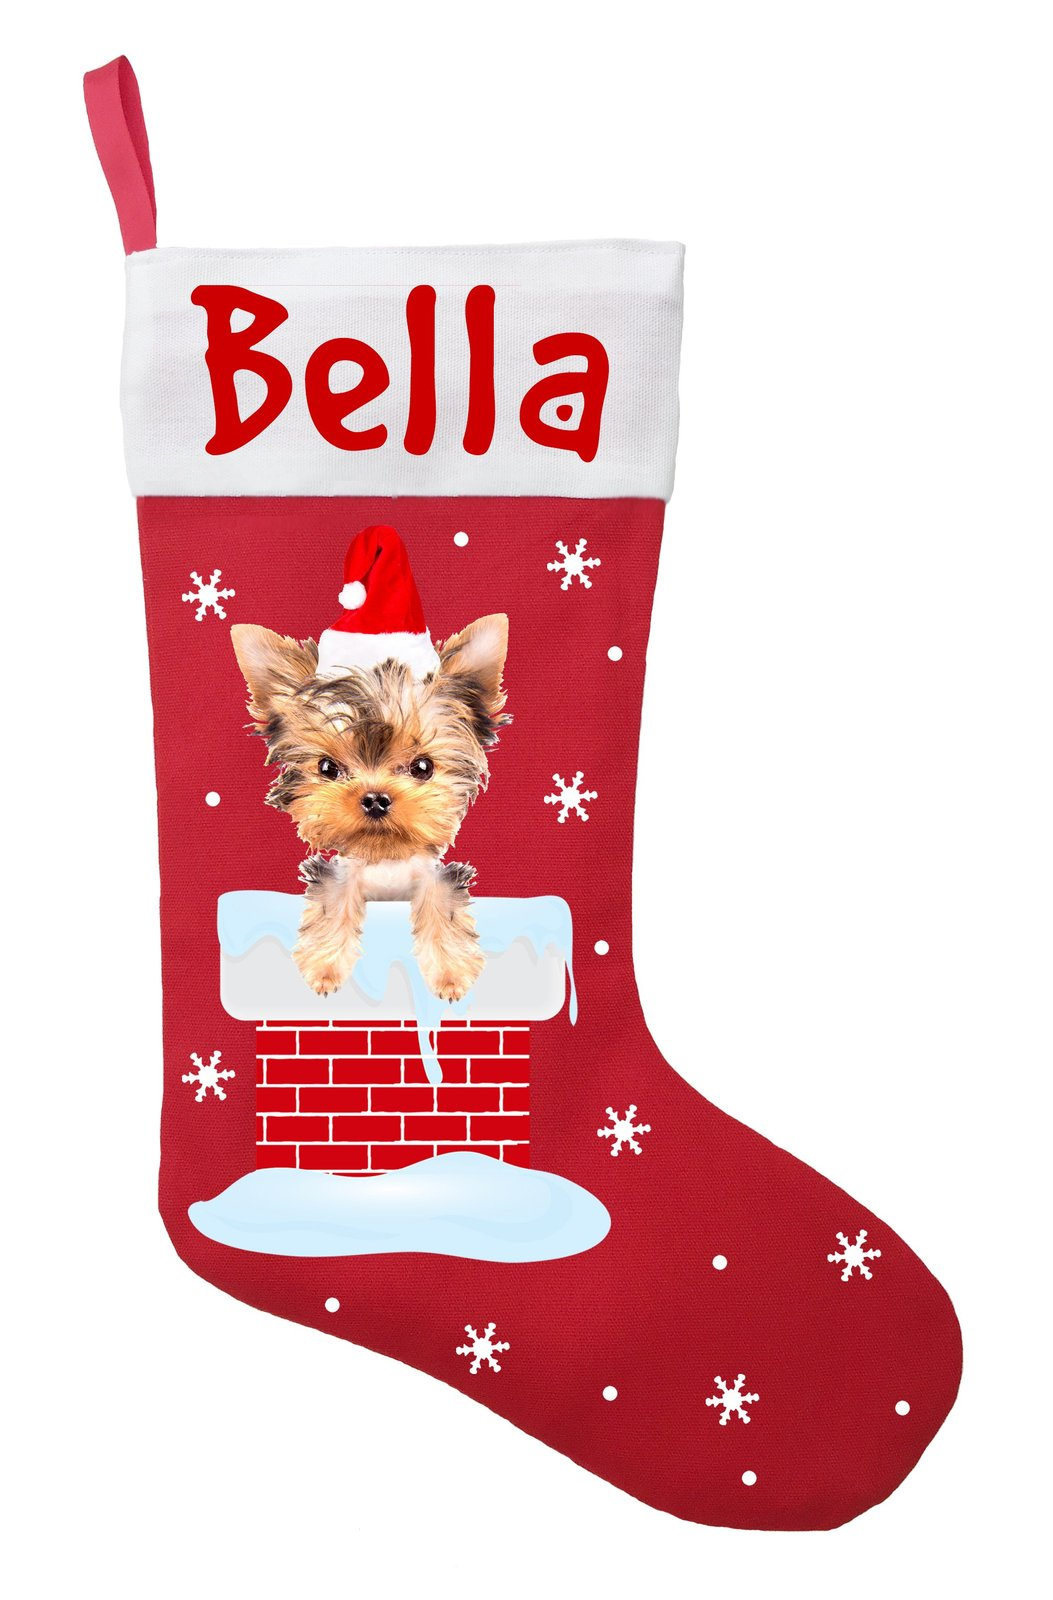 Yorkshire Terrier Christmas Stocking - Personalized Yorkie Stocking - Red